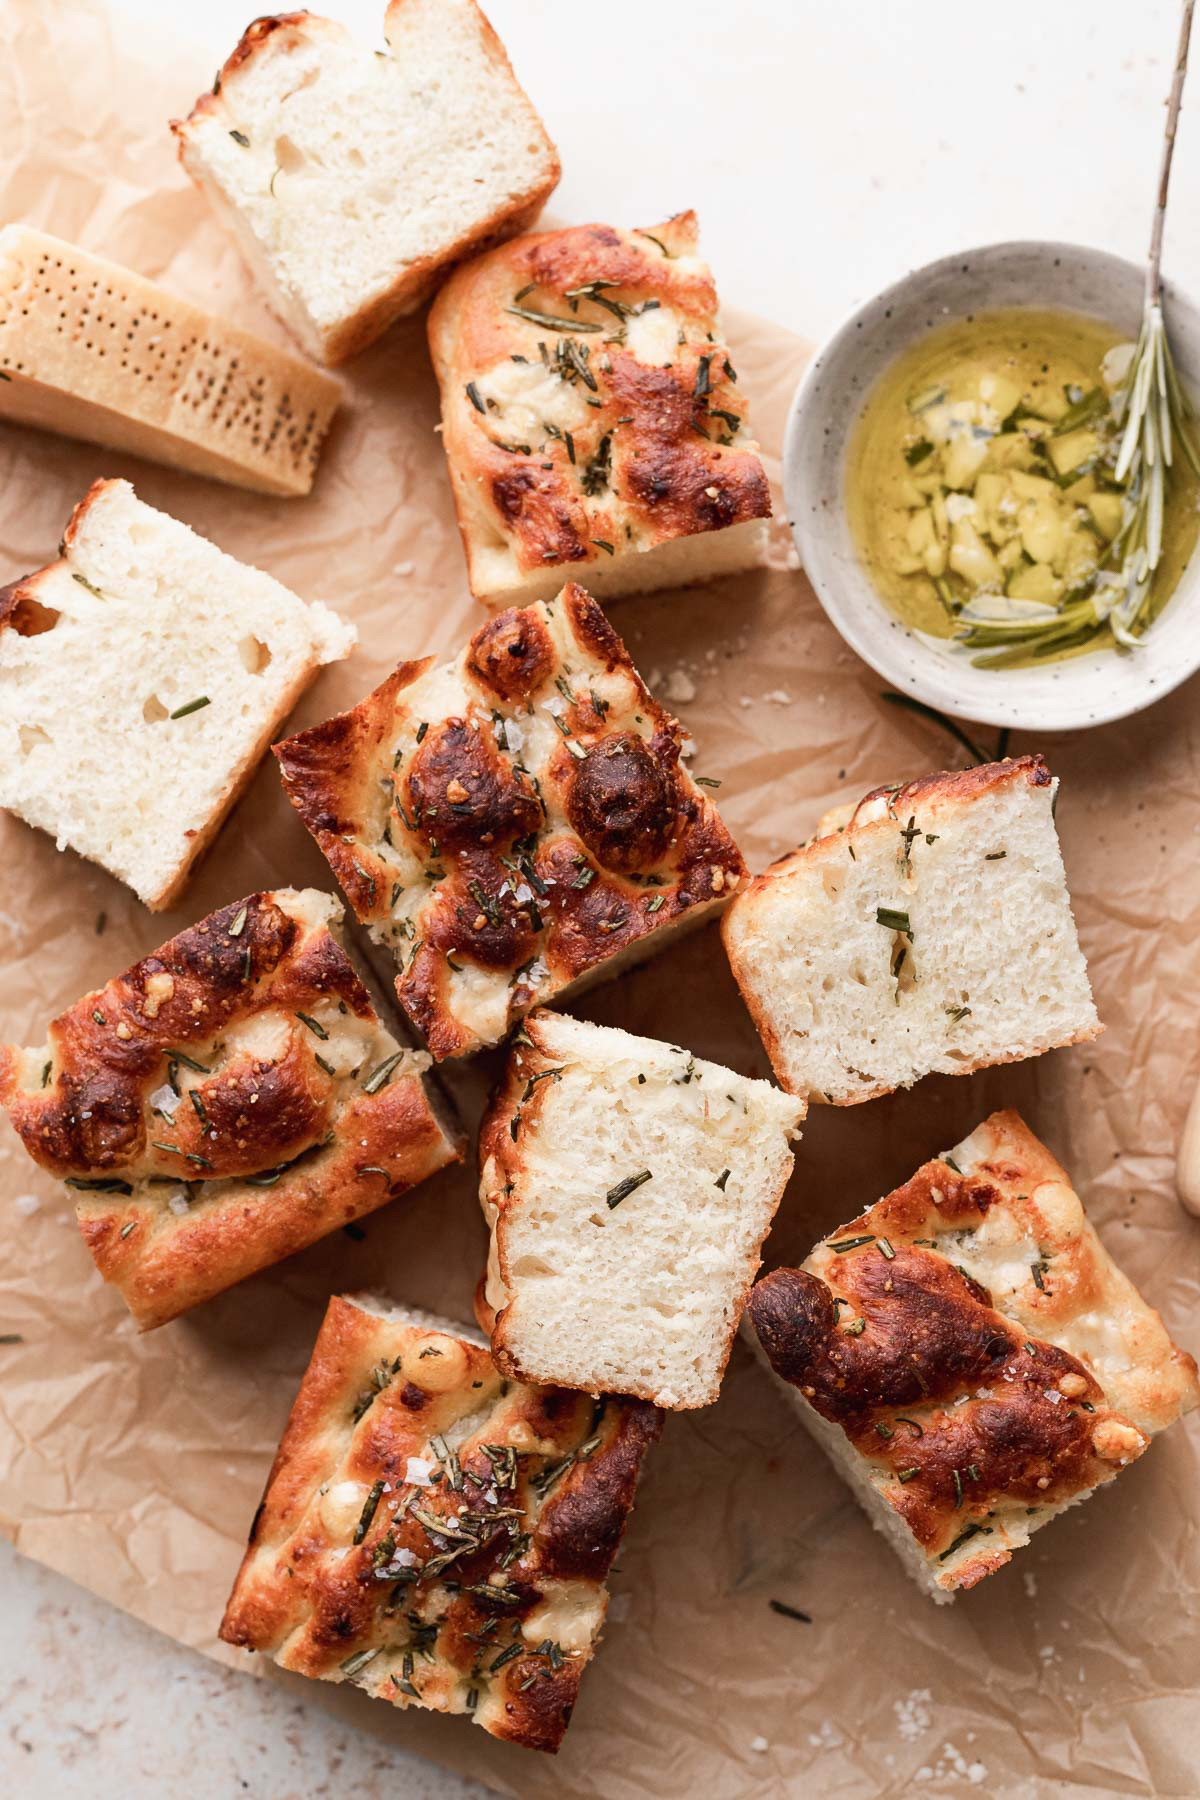 the sliced focaccia sitting on a brown piece of parchment paper